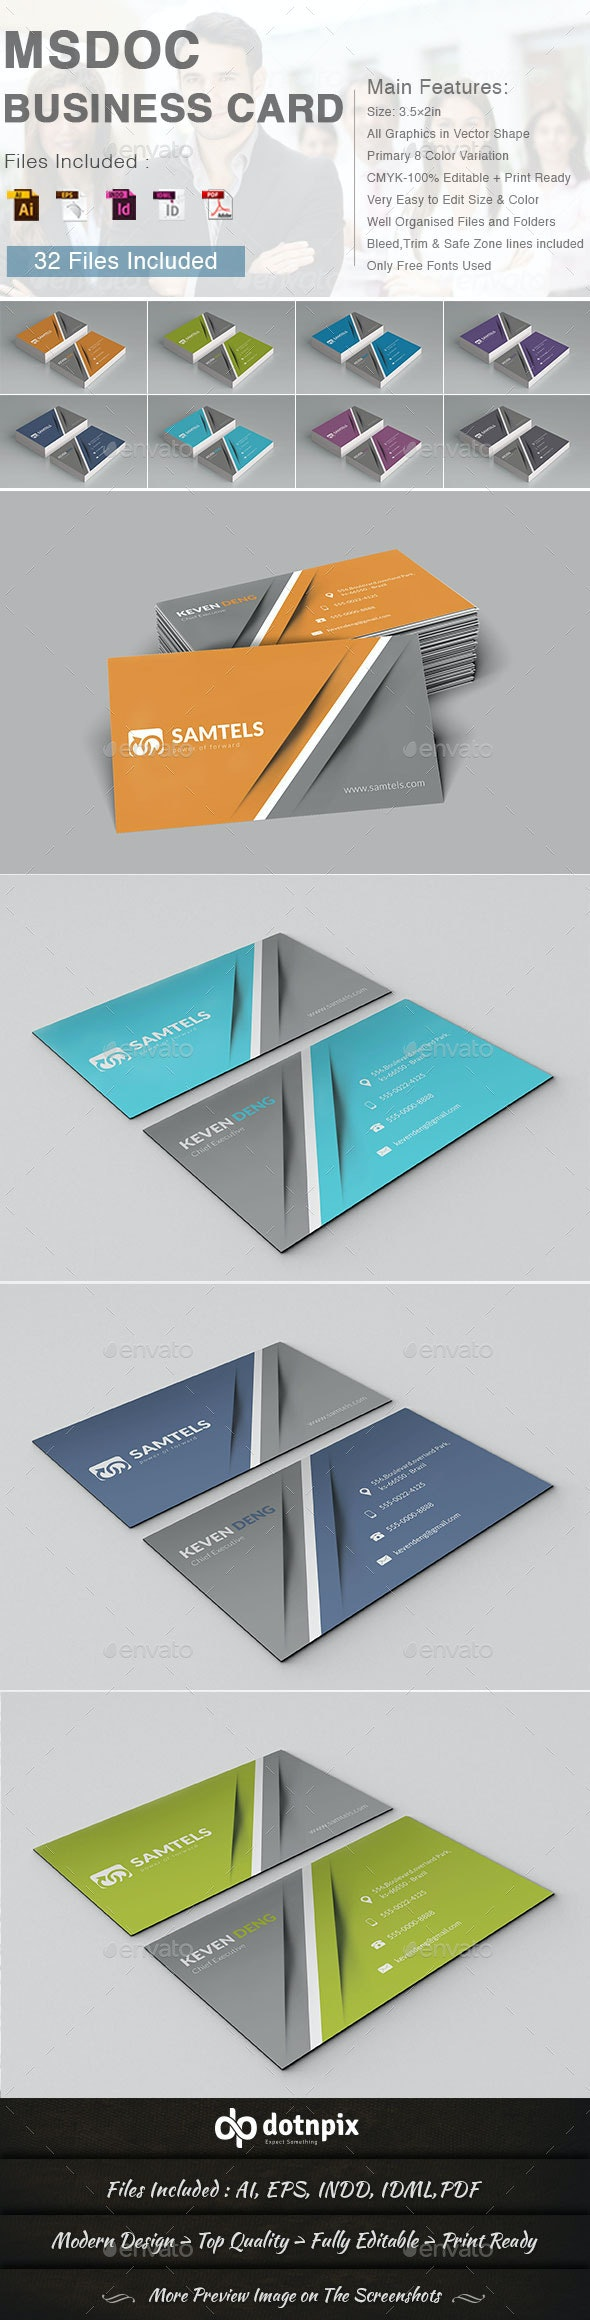 Msdoc Business Card - Corporate Business Cards